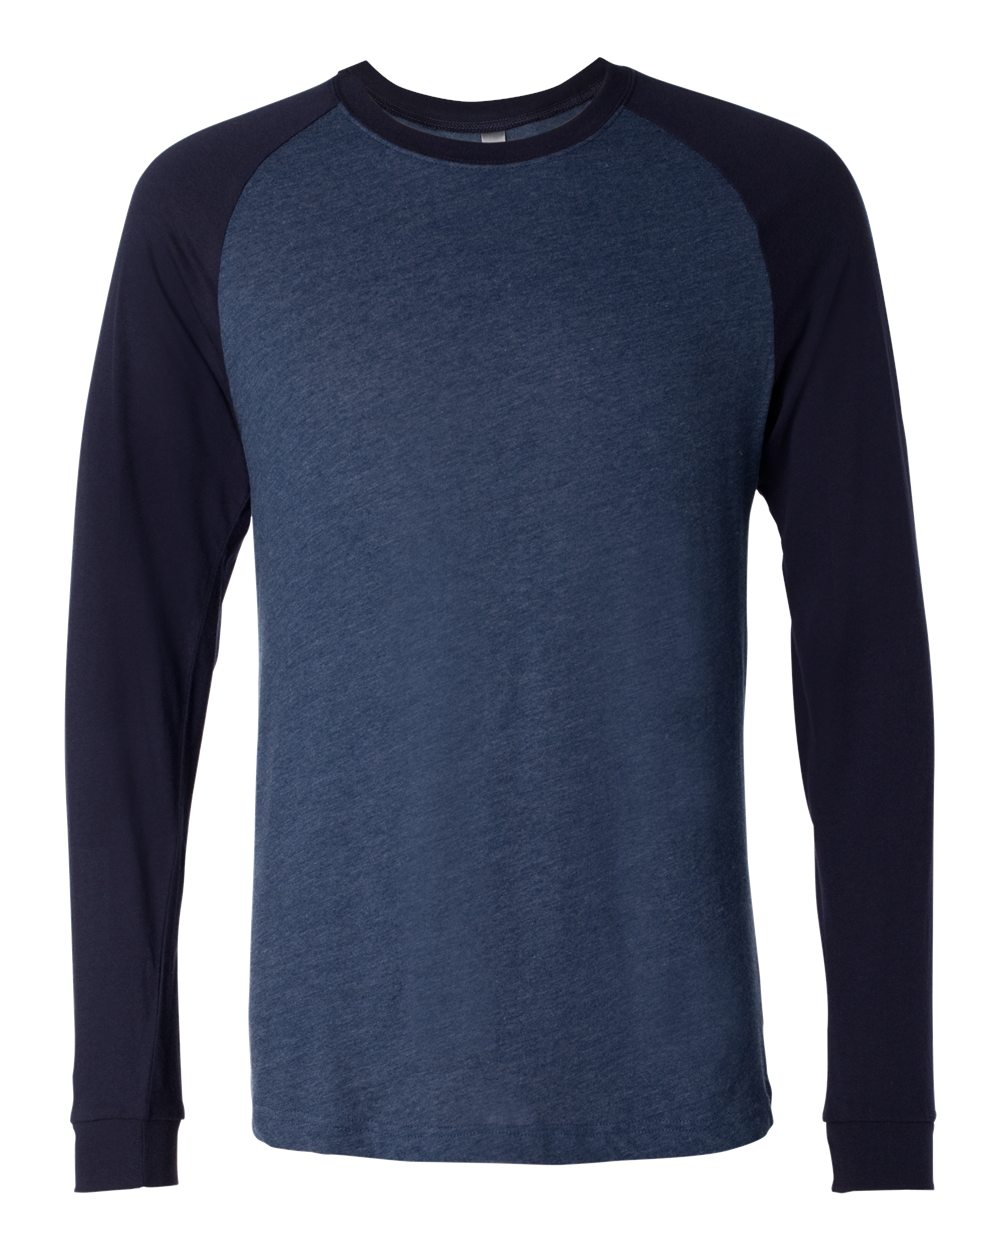 click to view Heather Navy/Midnight